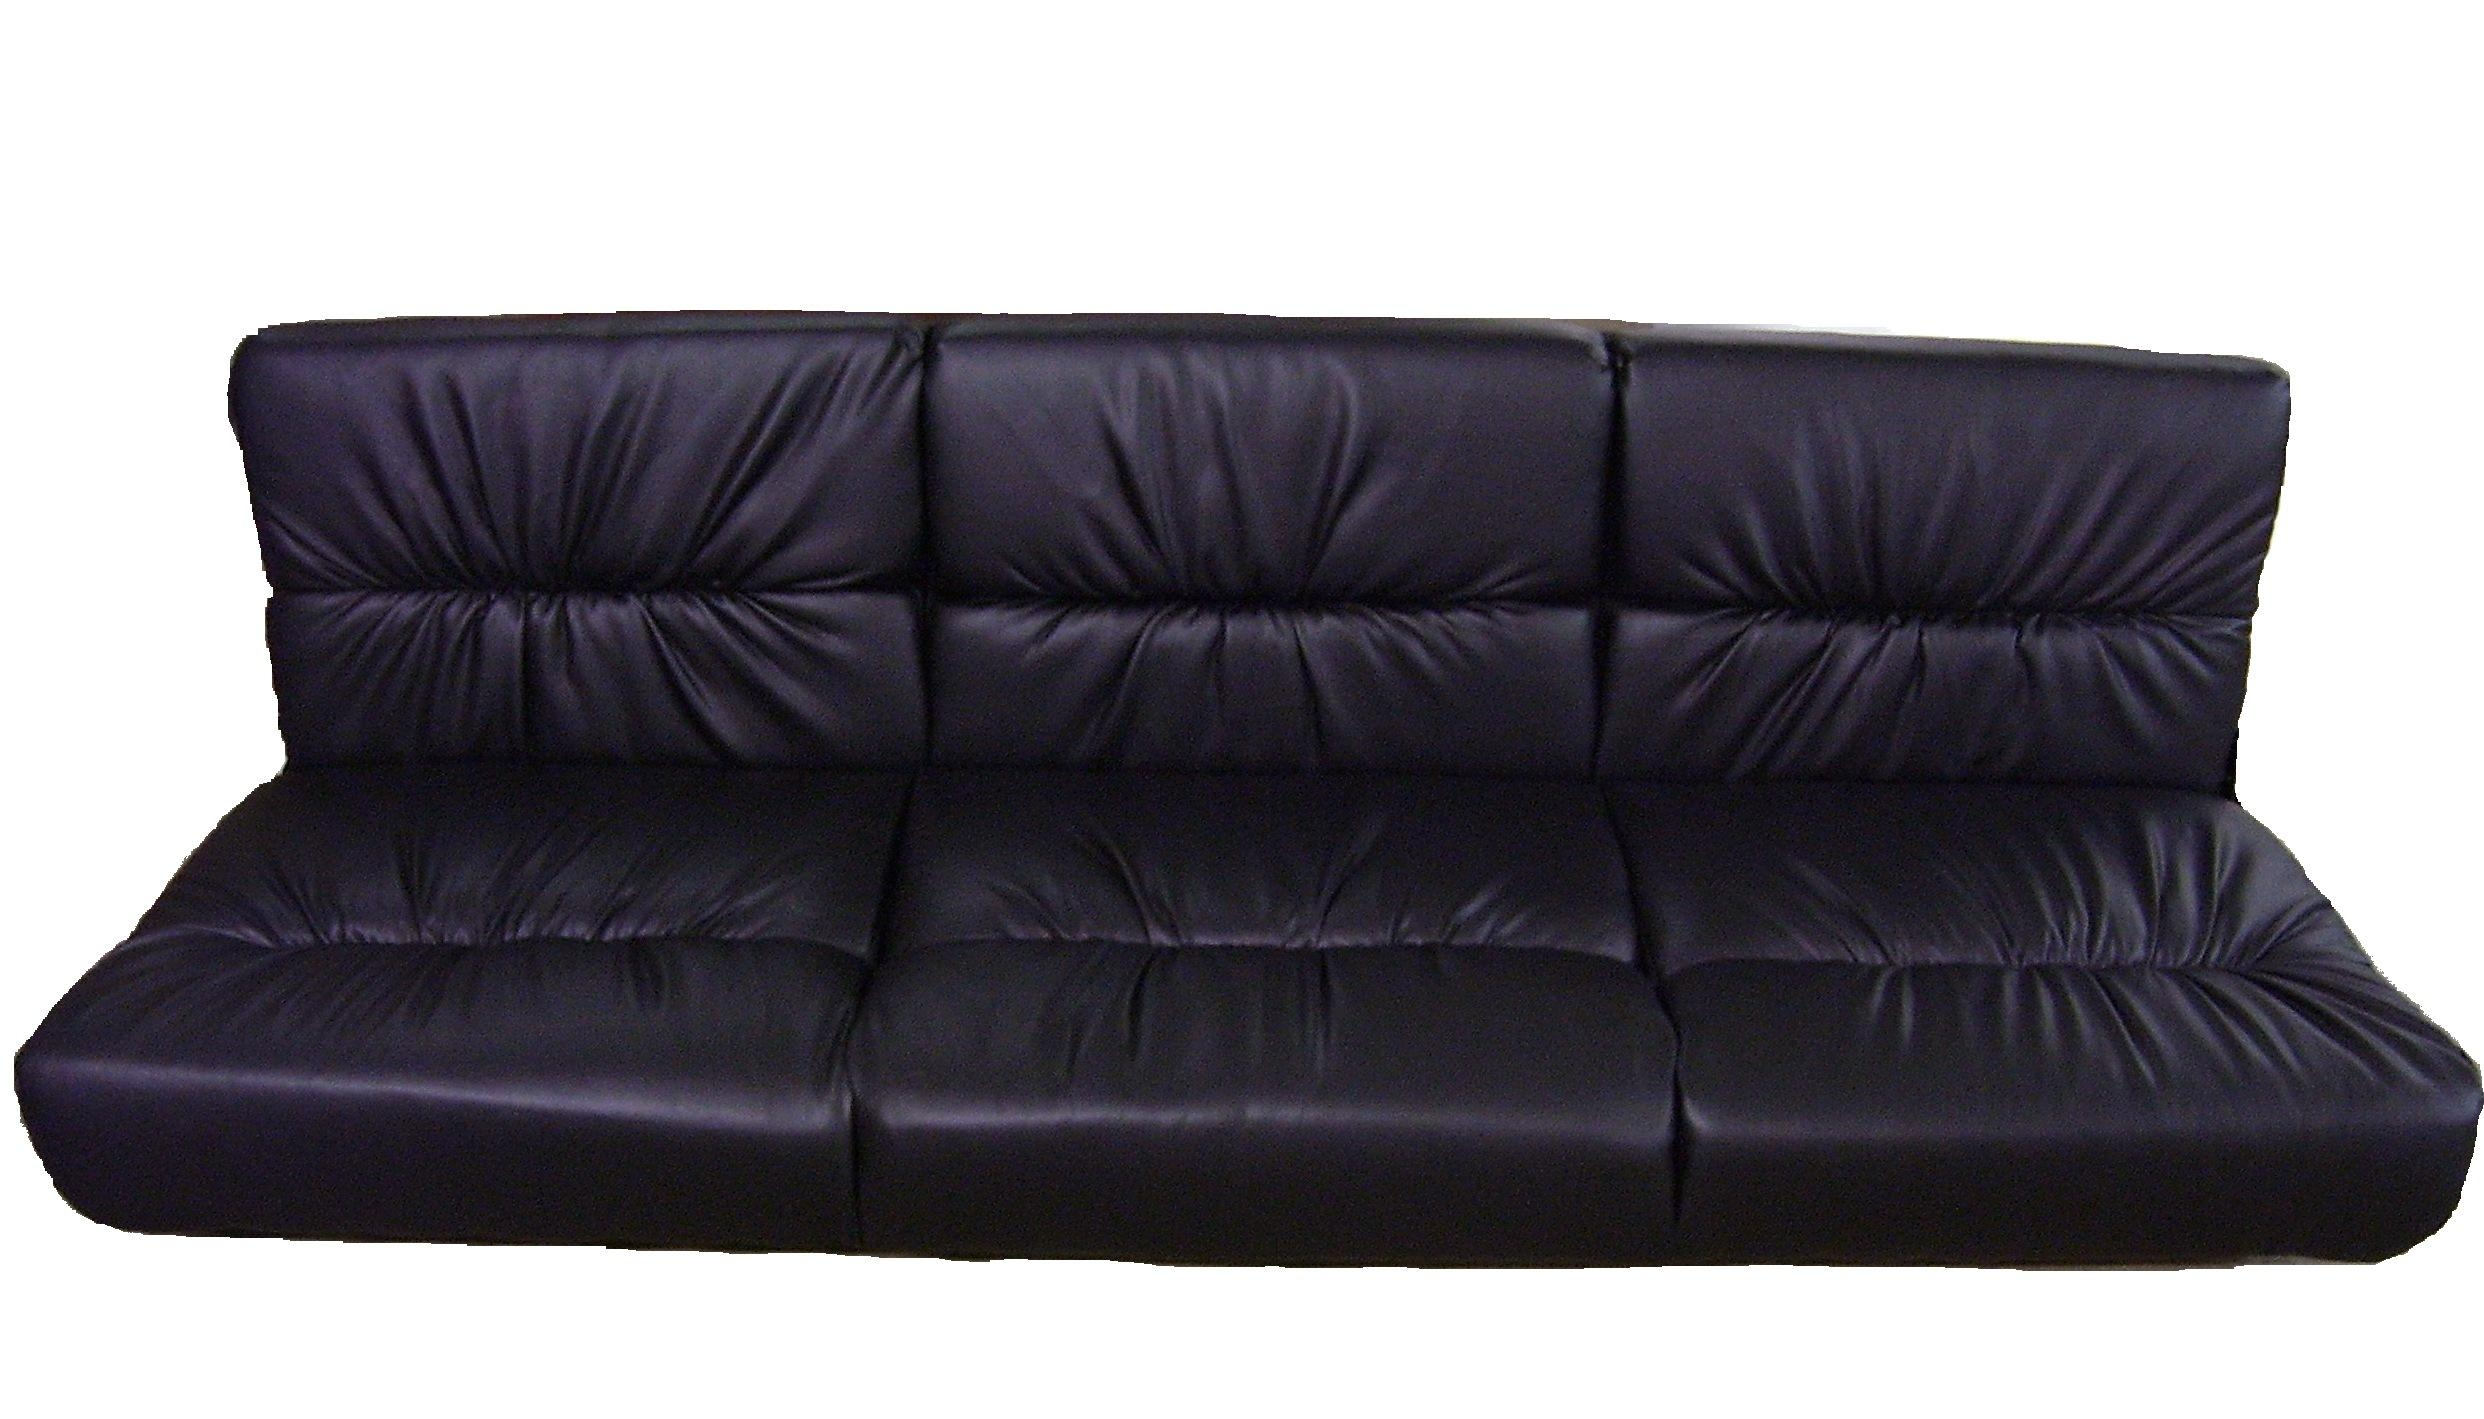 Featured Image of Rv Jackknife Sofas